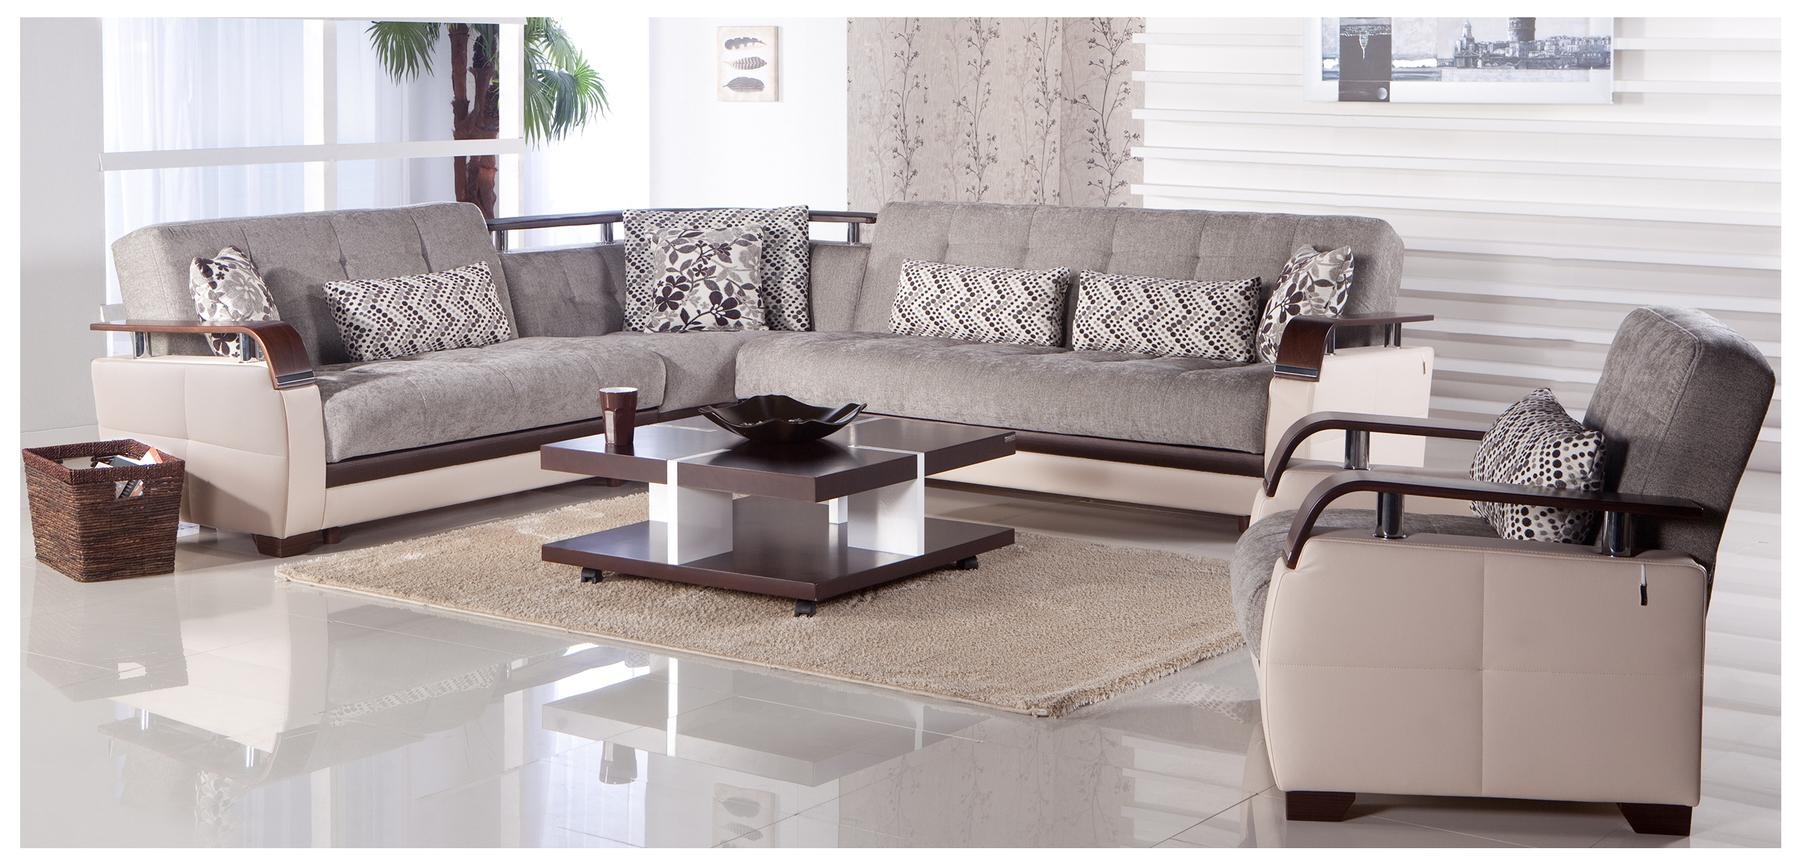 Sofas Center : Appealing Cream Colored Sectional Sofa On Leather With Regard To Modern Sofas Houston (View 5 of 20)